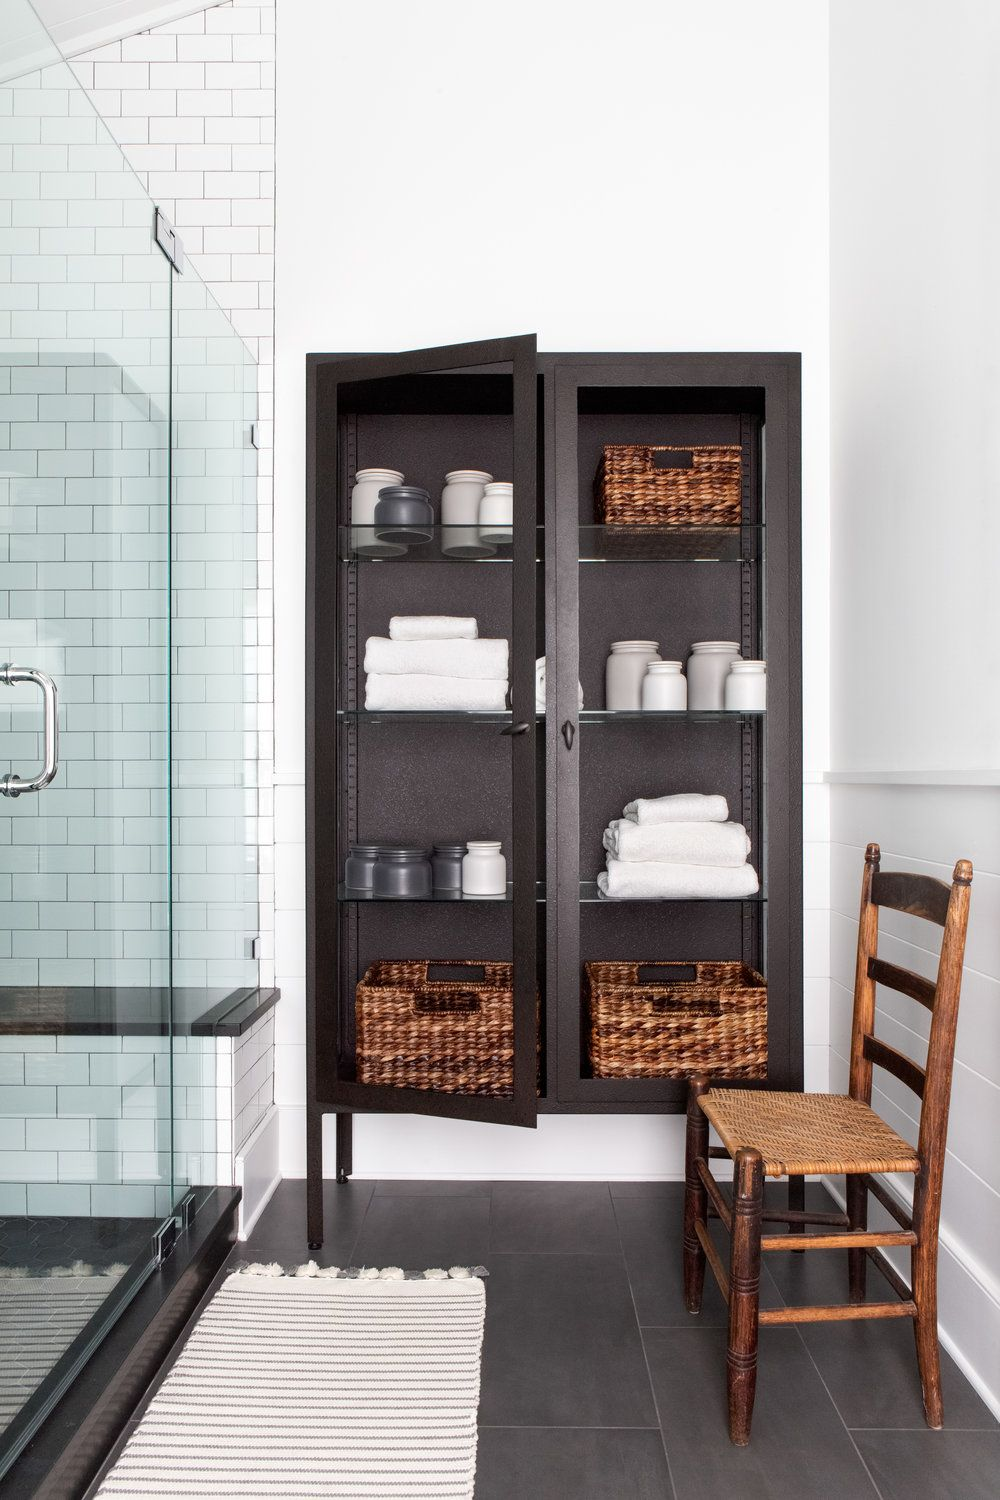 12 Best Bathroom Storage Ideas in 1221 - Creative Bathroom Storage